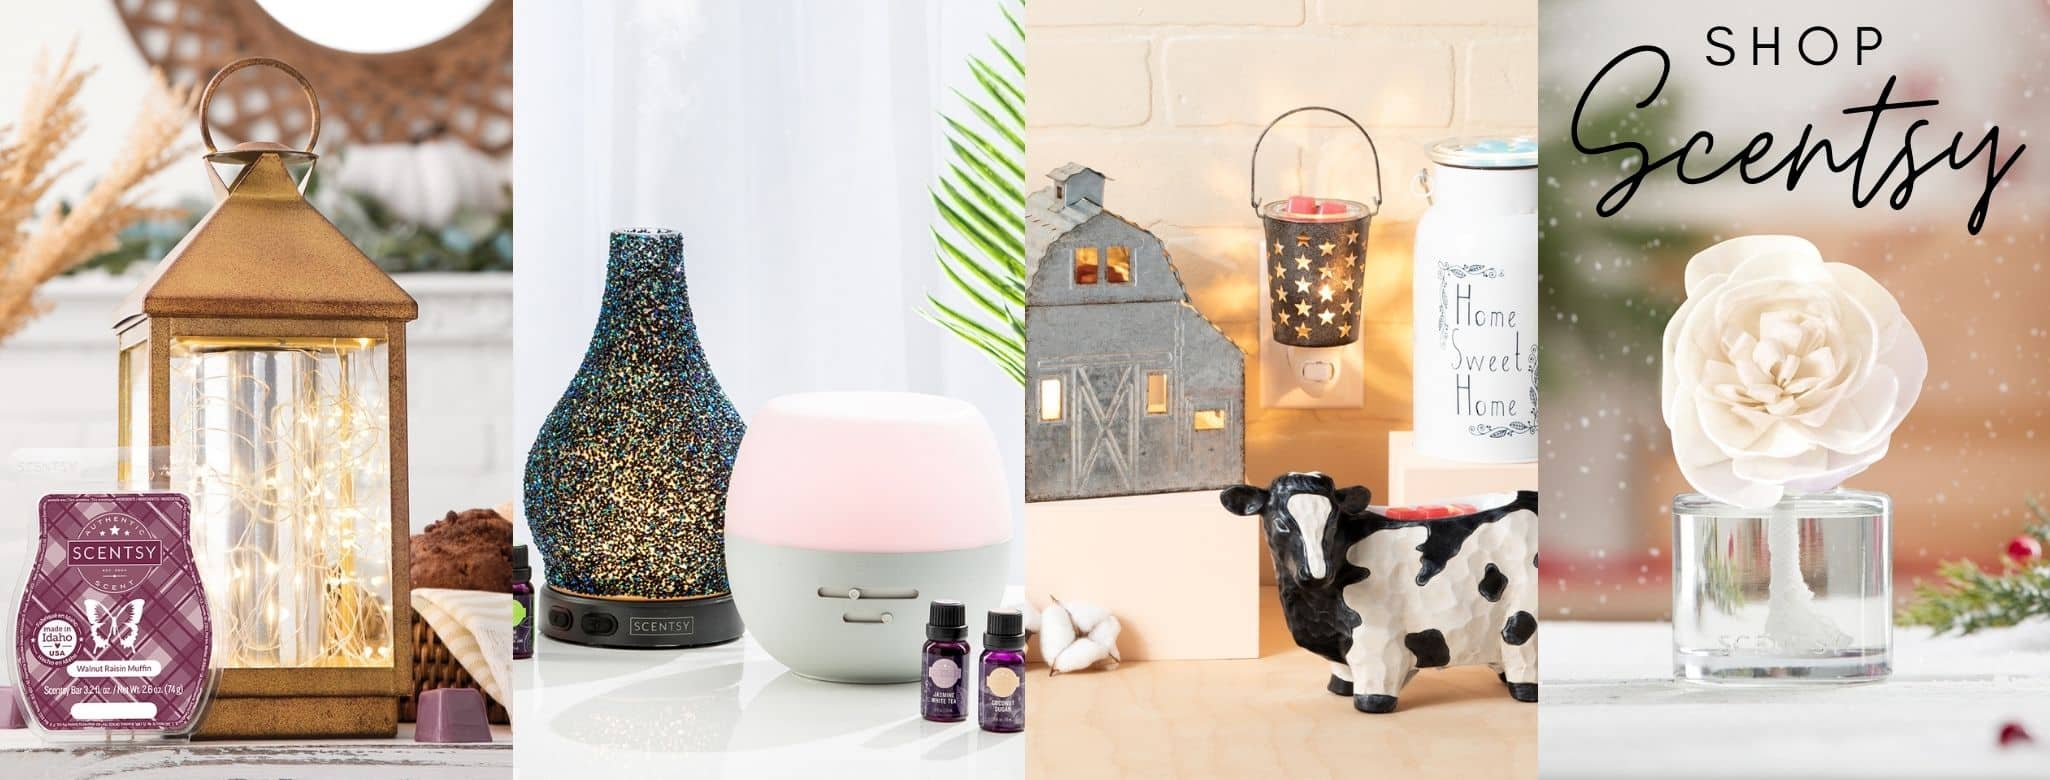 Shop Scentsy Warmers Scents